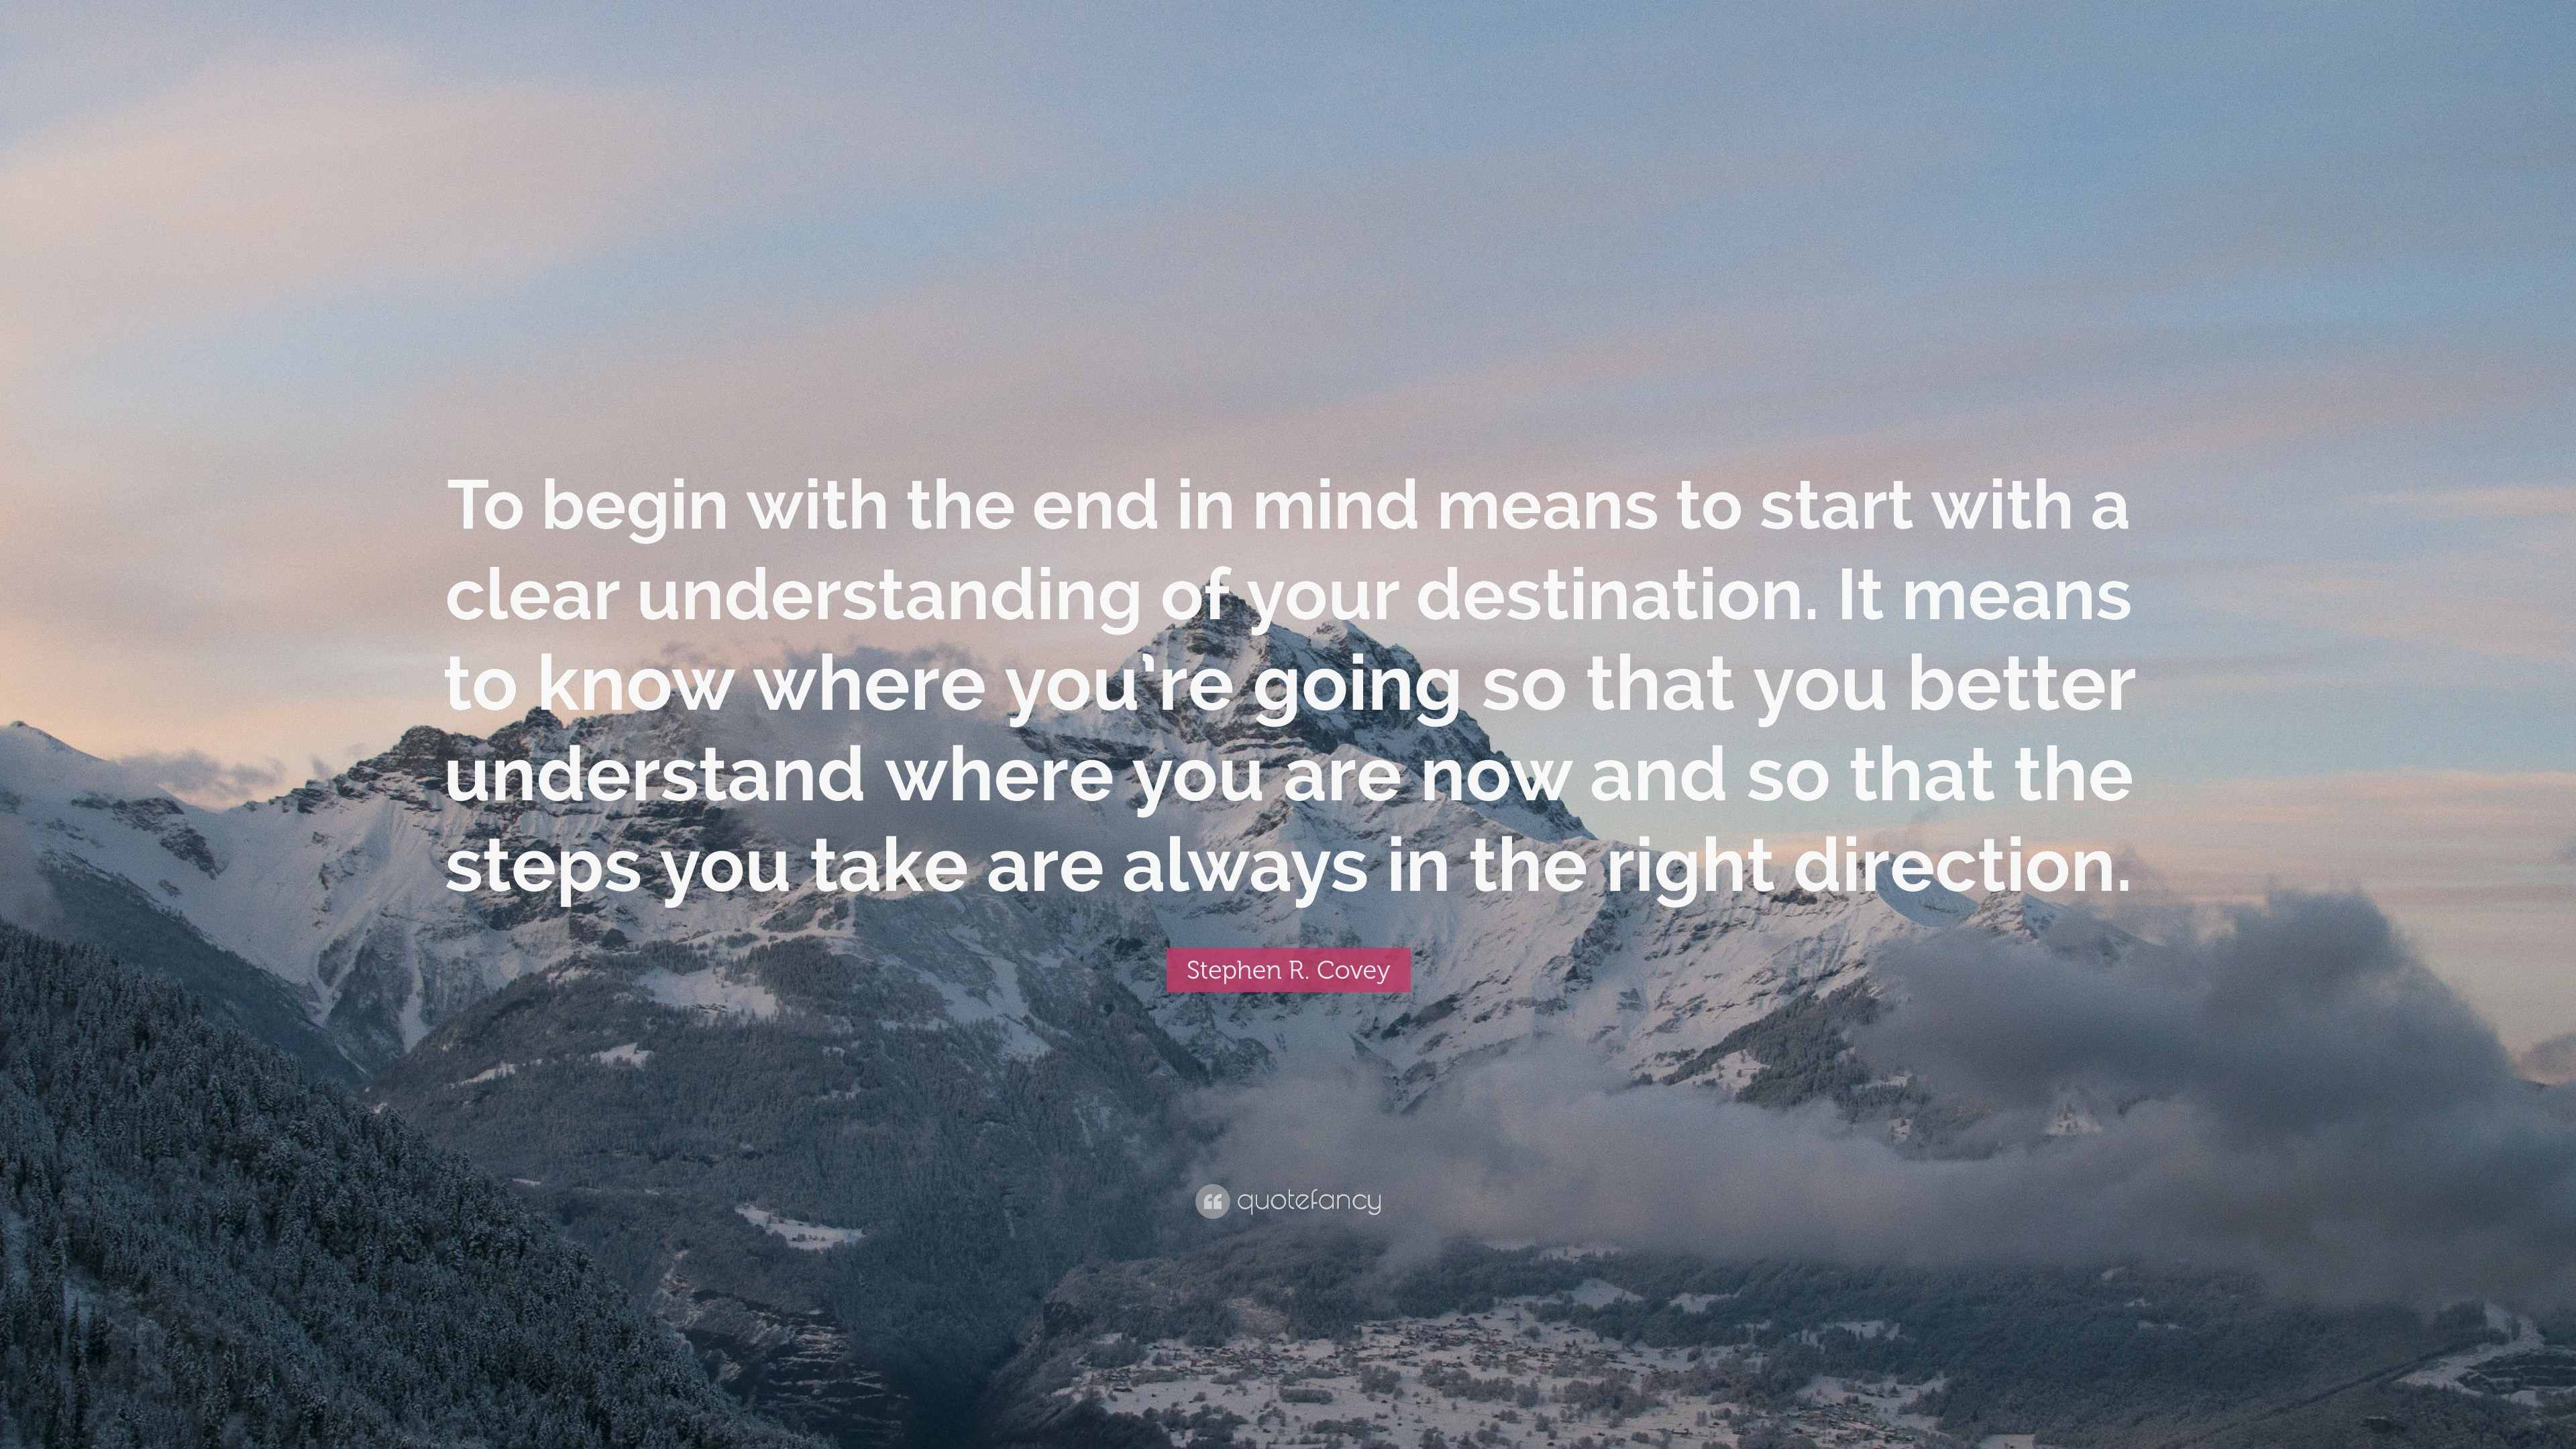 Stephen R Covey Quote To Begin With The End In Mind Means To